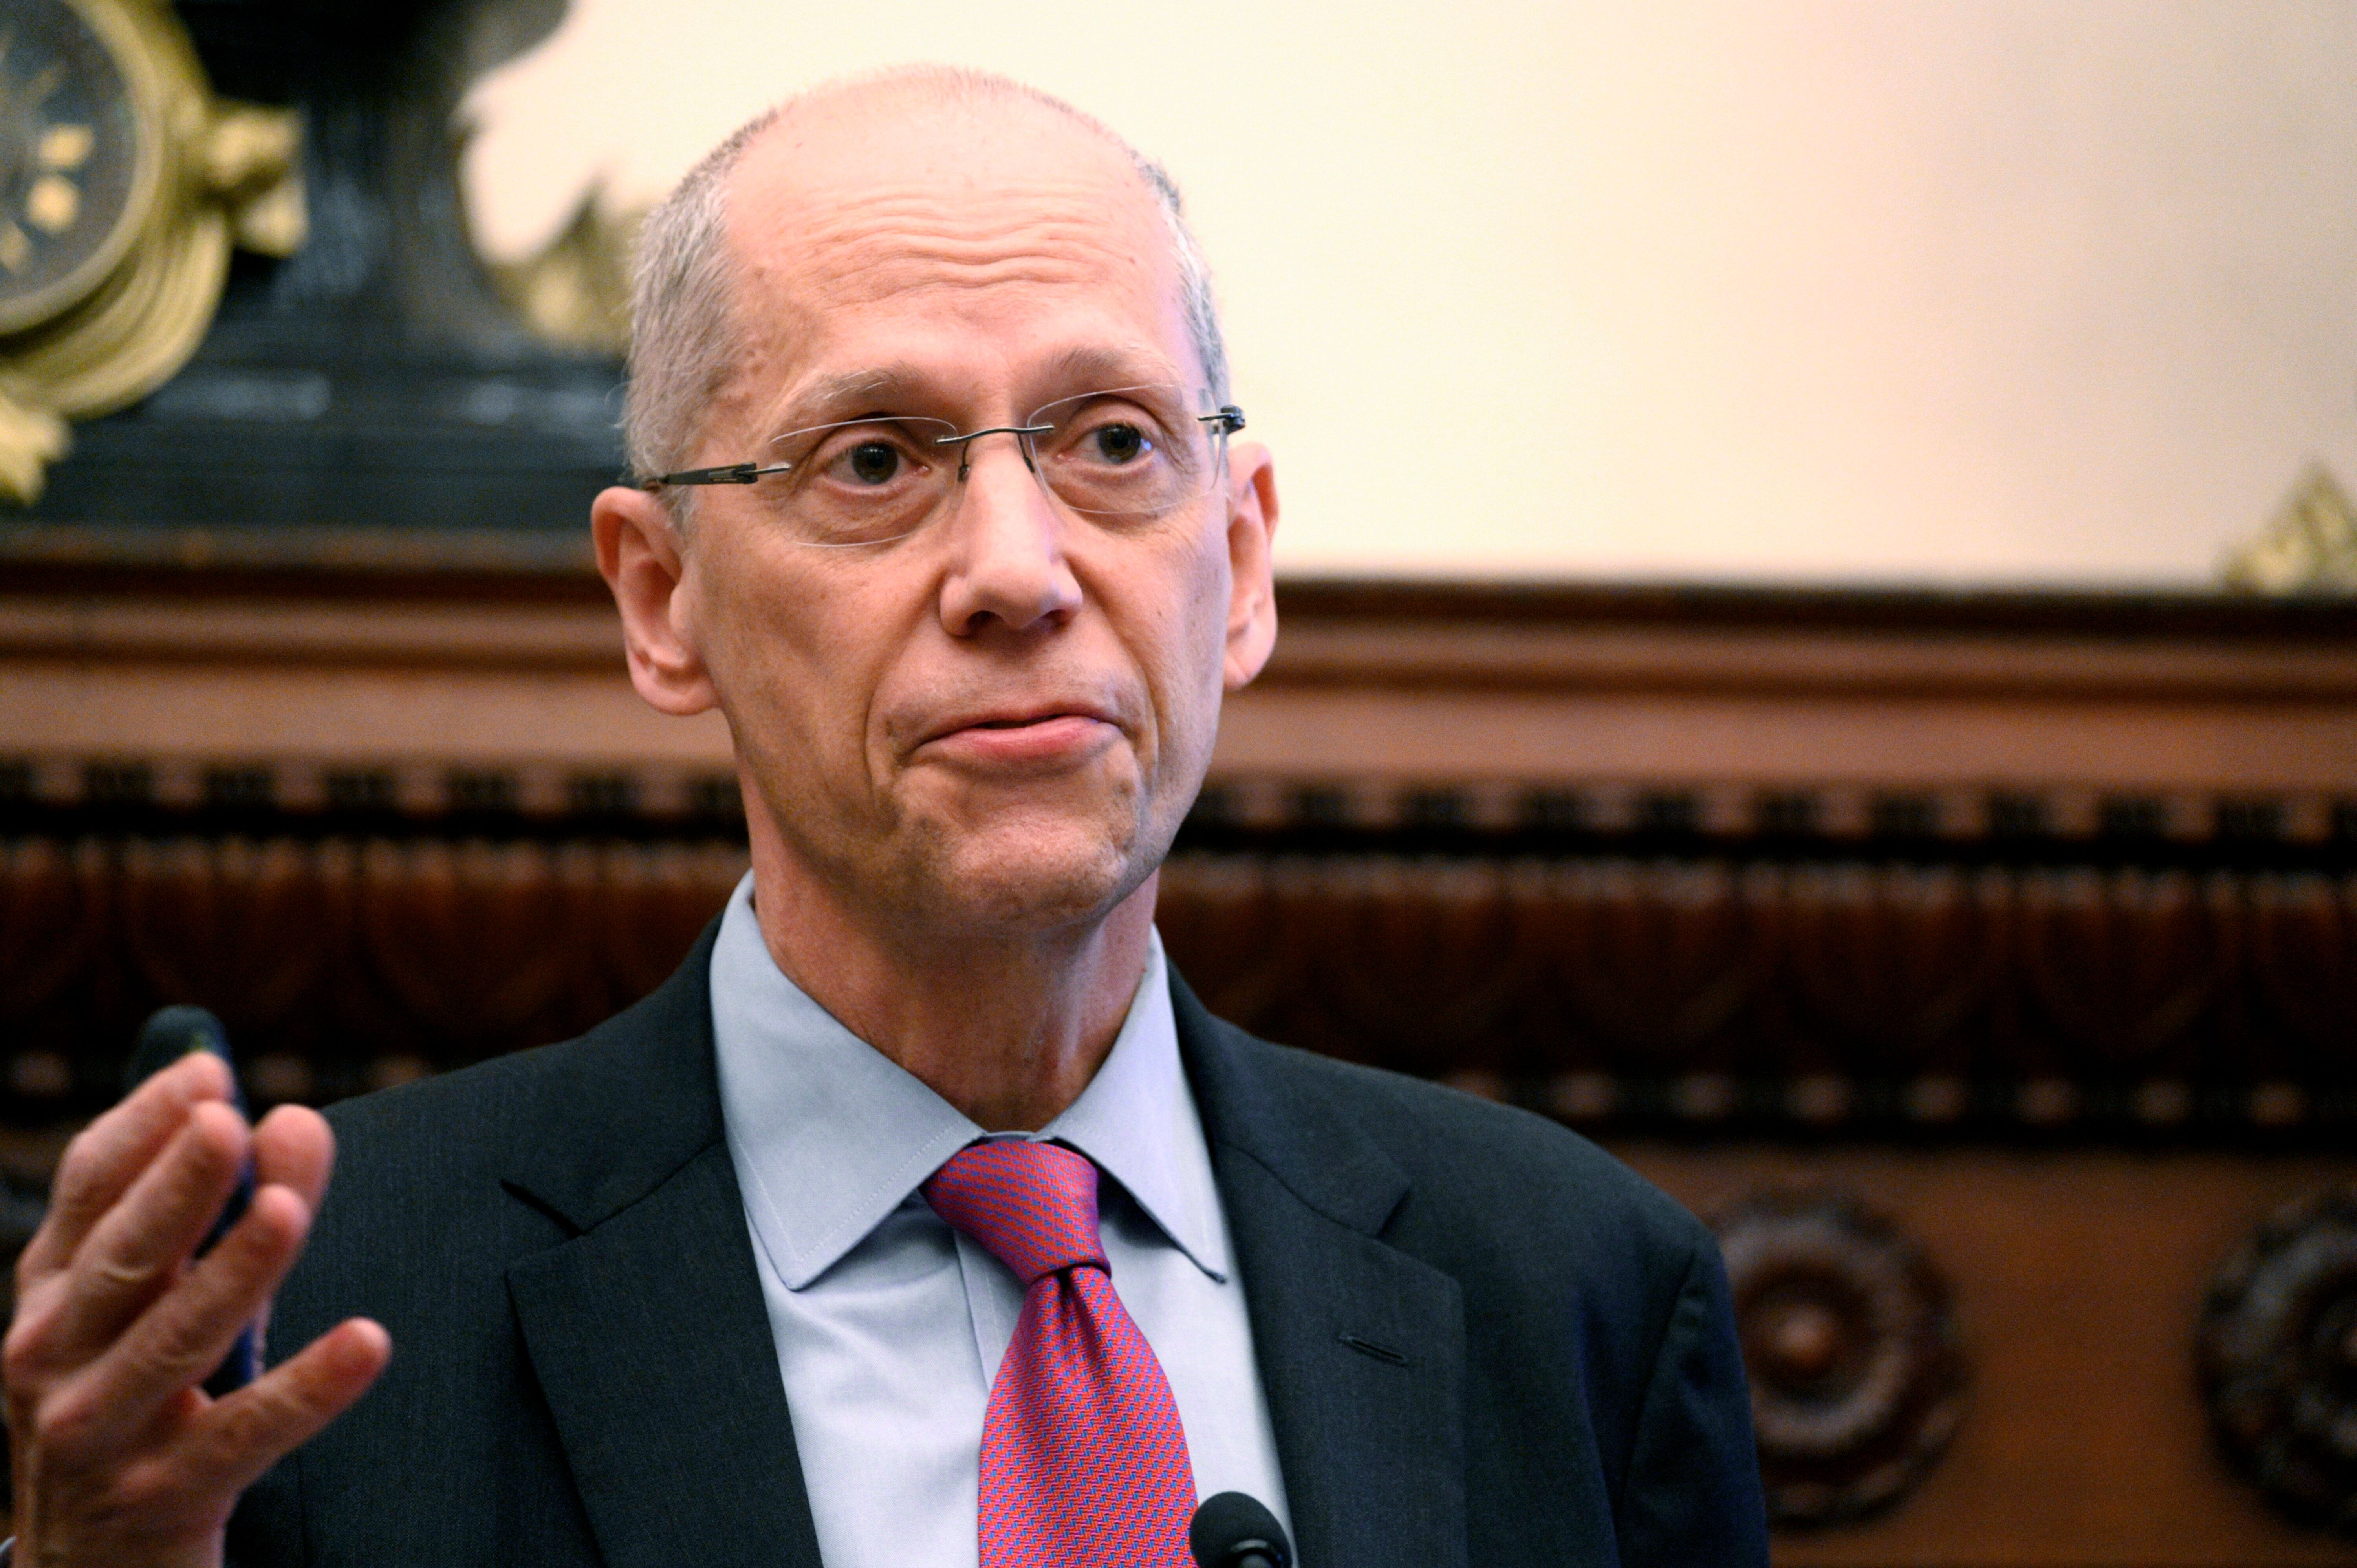 Dr. Thomas Farley, former health commissioner of Philadelphia, was forced to resign effective immediately on Thursday.